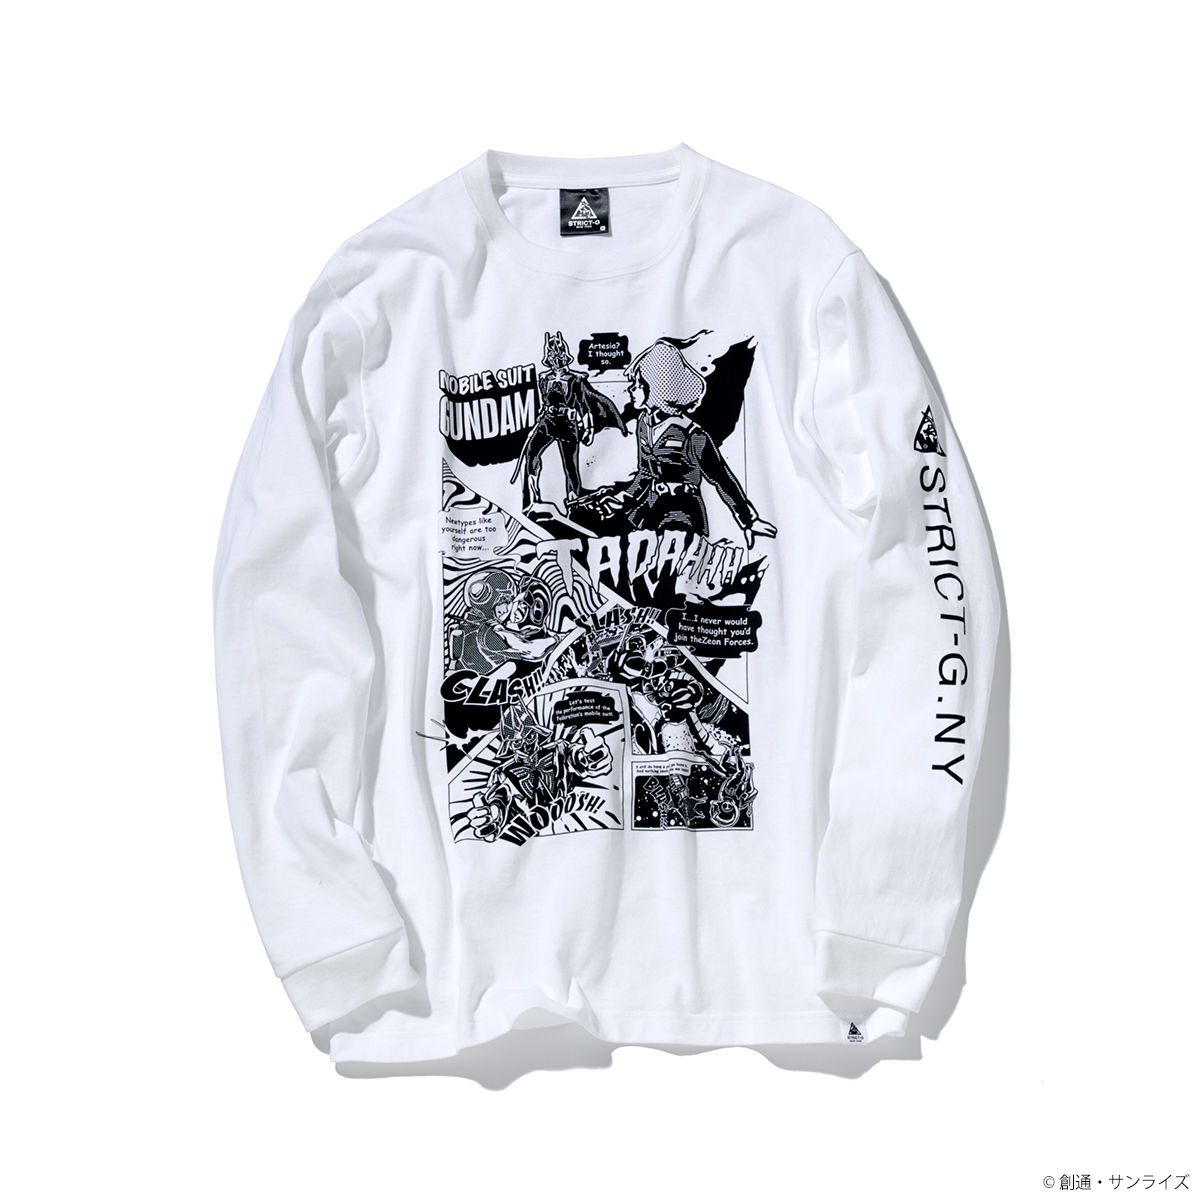 STRICT-G NEW YARK American Comic Design Long-Sleeve T-shirt